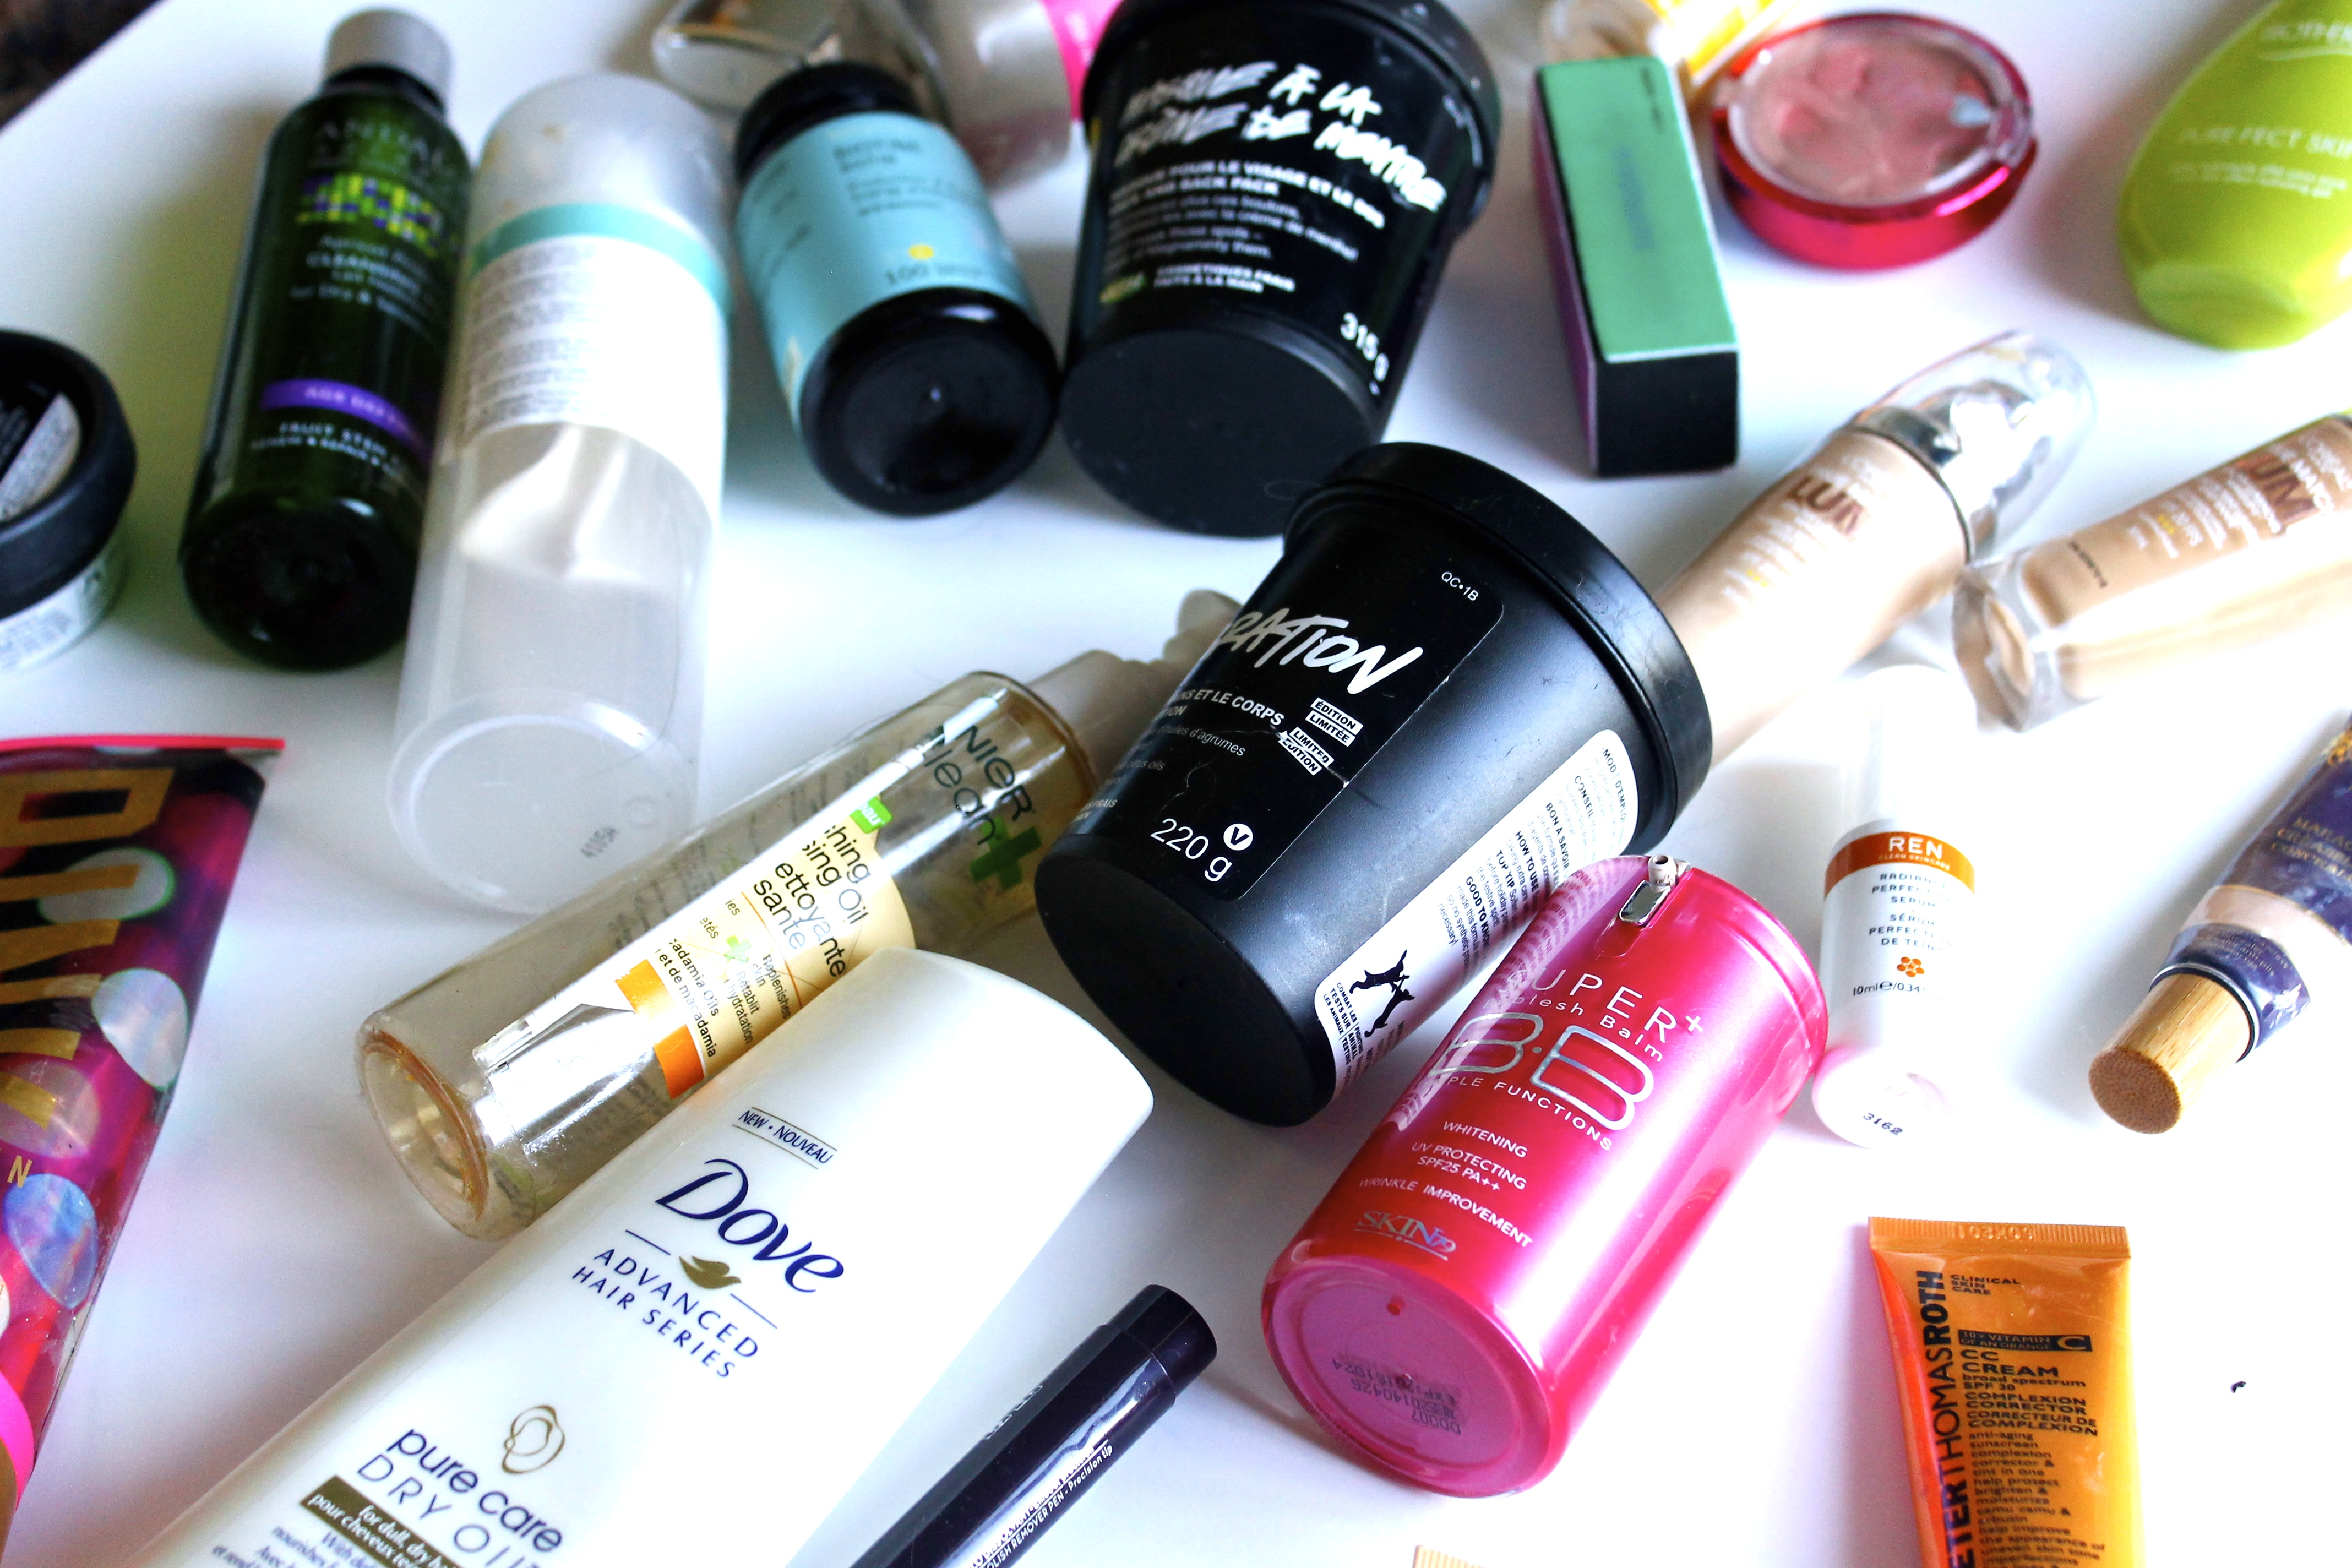 September and October Empties 2015